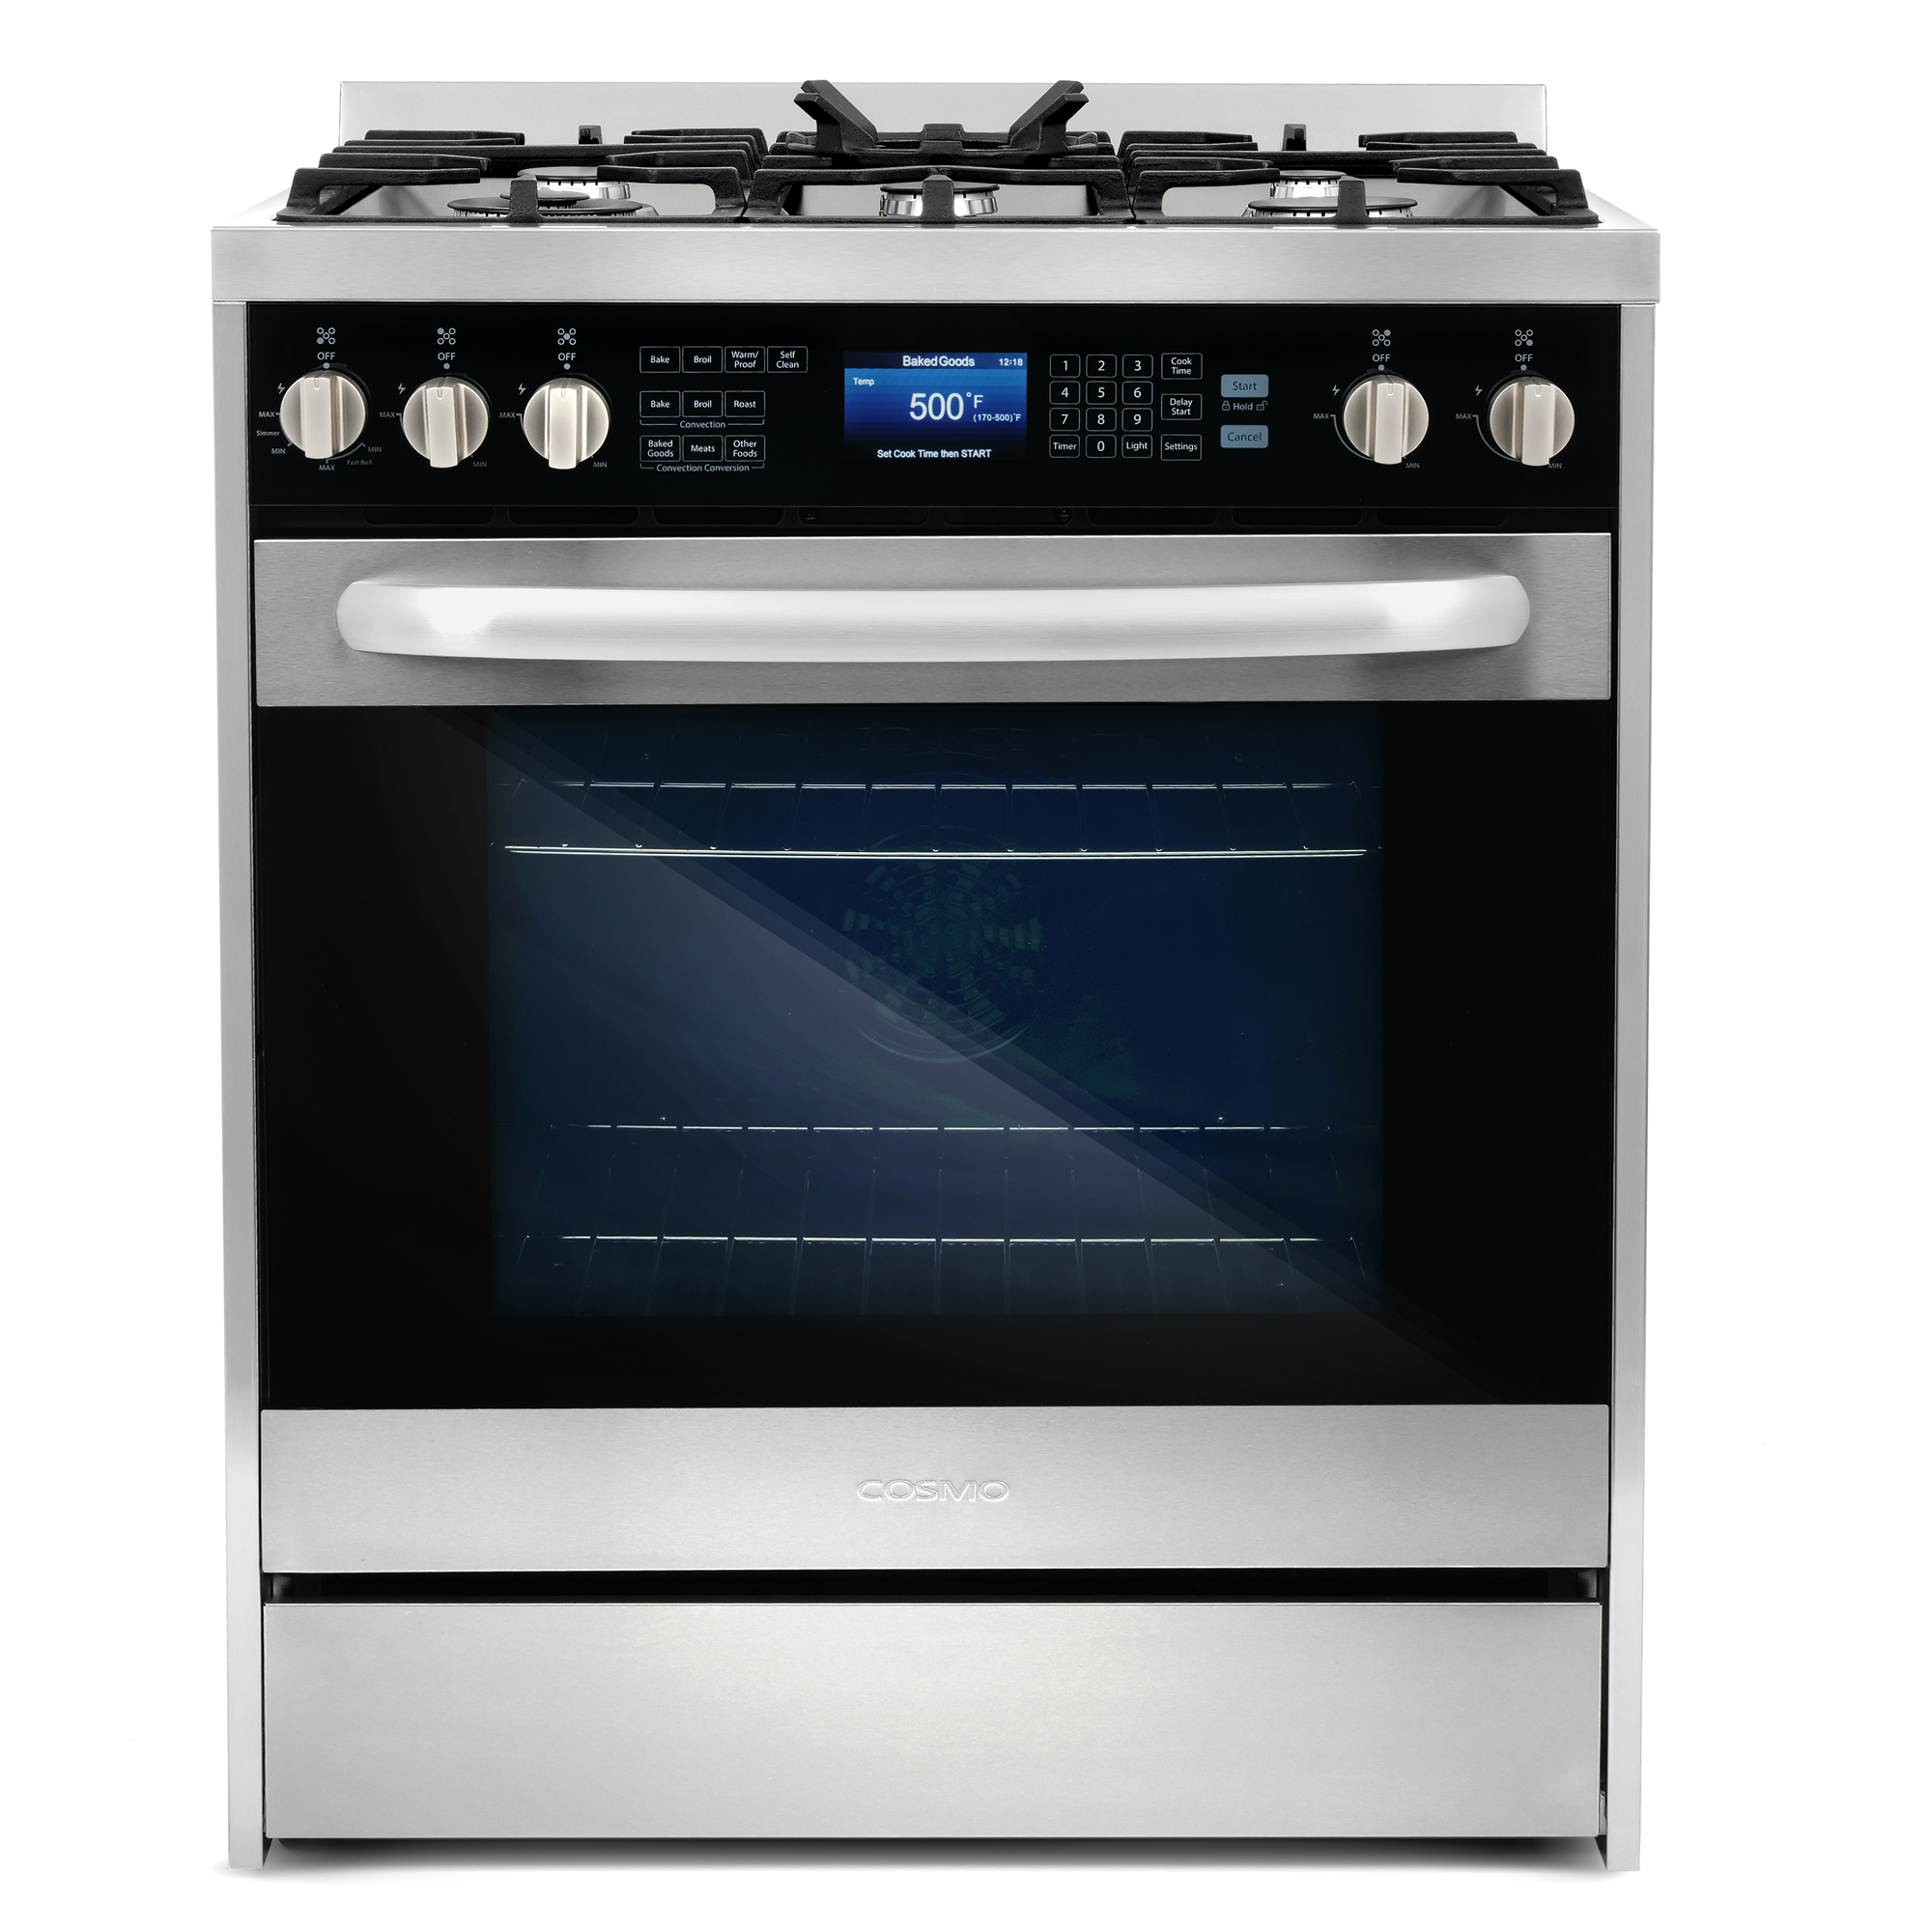 """COS-305DFSC 30"""" Dual Fuel Range with 7 Function Convection Oven"""